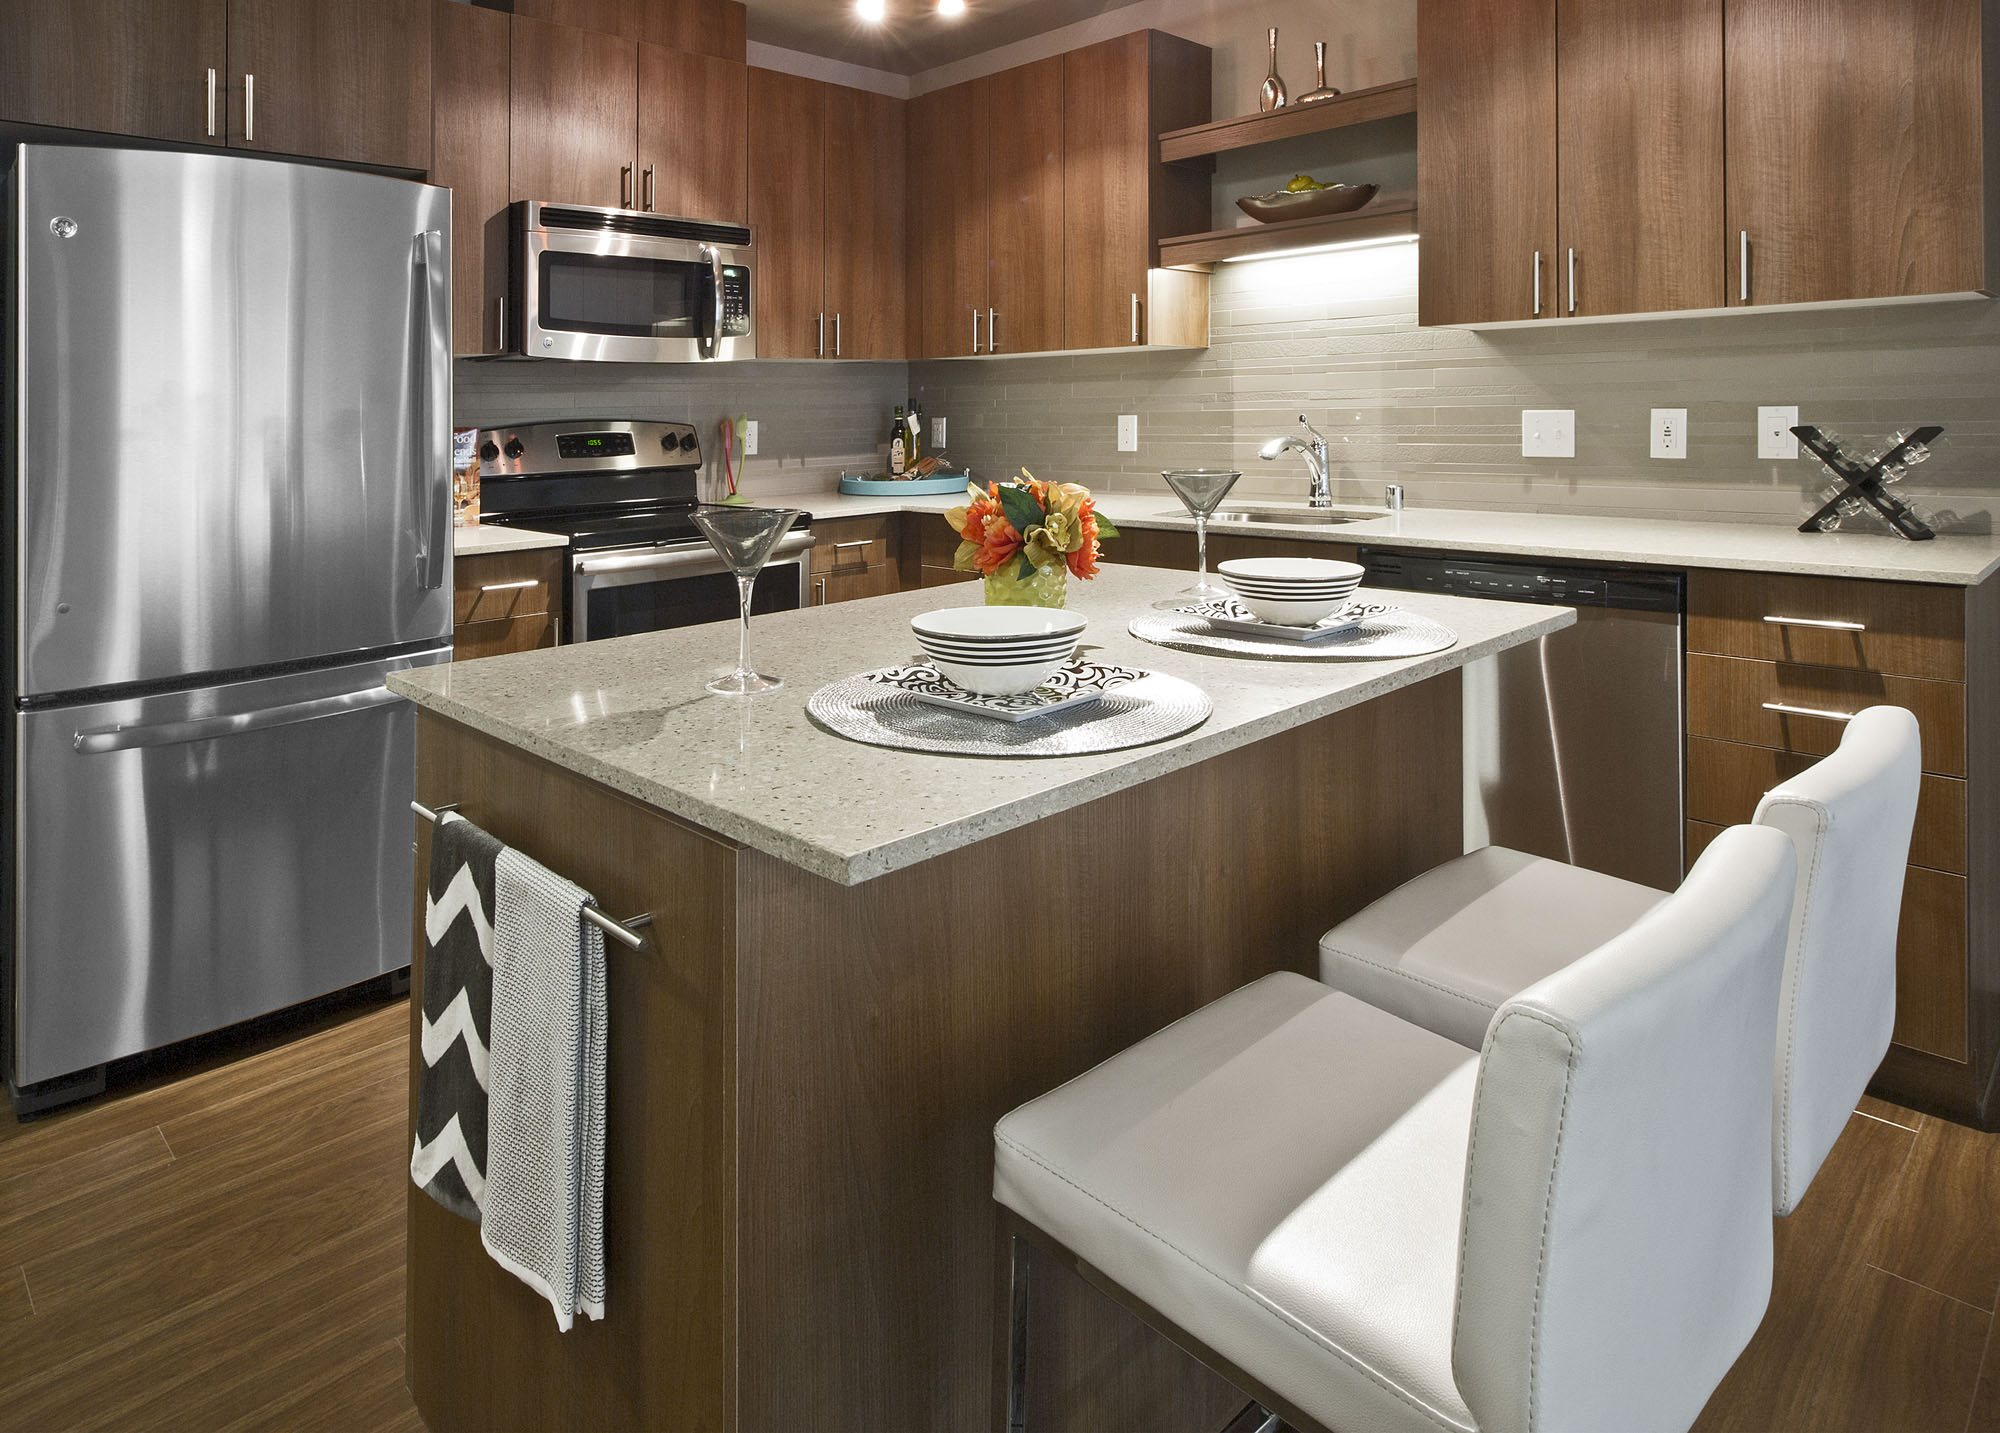 GE Stainless Steel Kitchen Appliances at Astro Apartments, Seattle, WA,98109